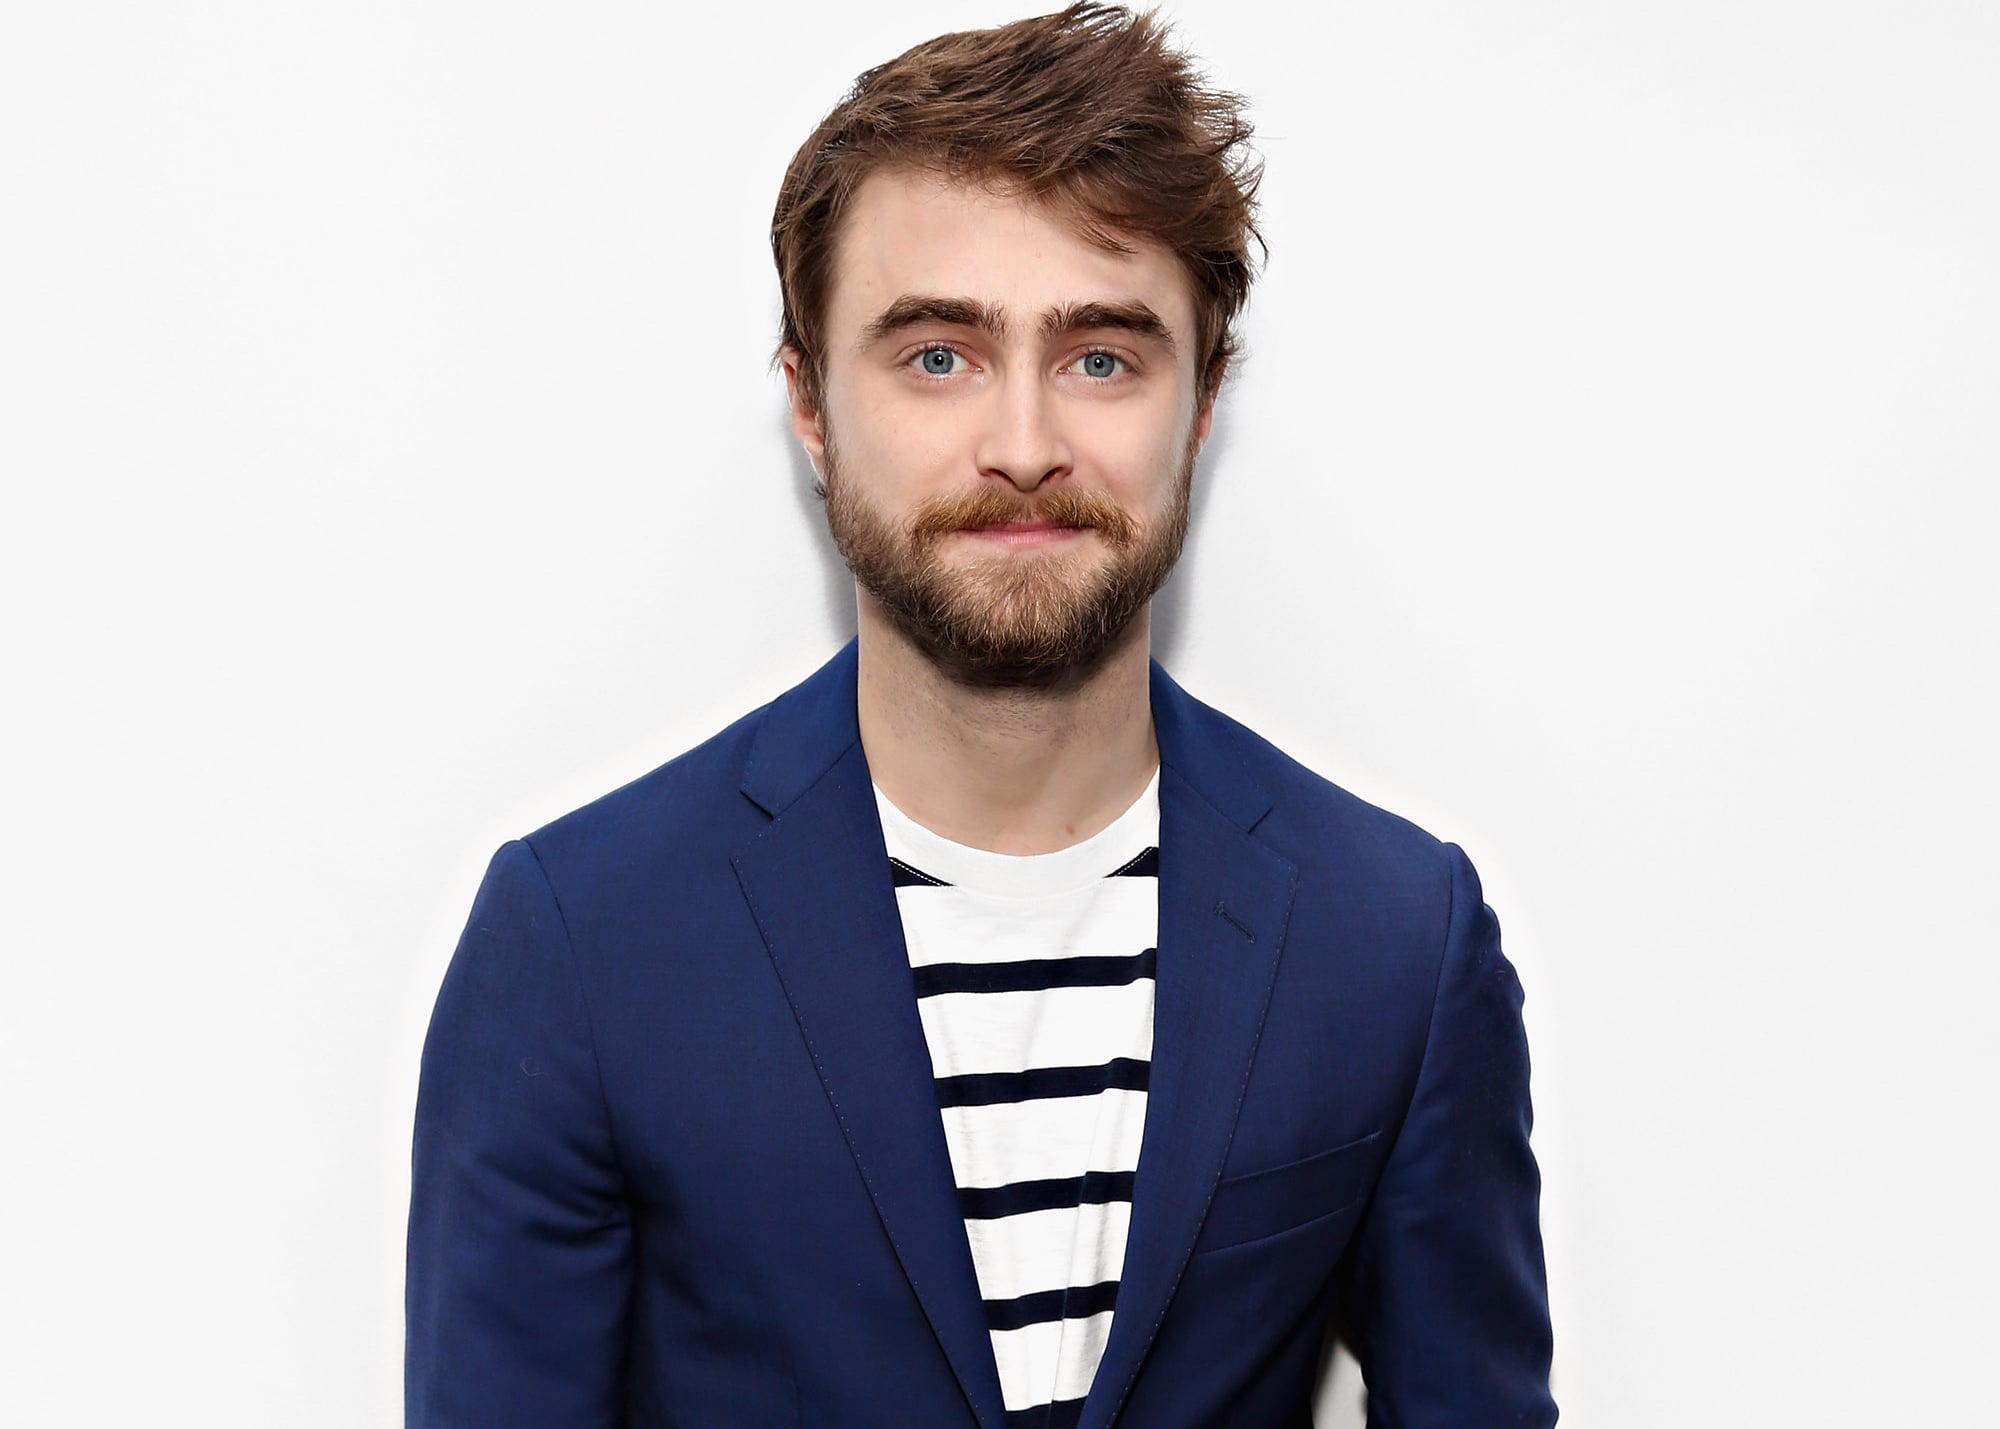 Daniel Radcliffe Is Joining Unbreakable Kimmy Schmidt, and He Might Be Kimmy's Love Interest